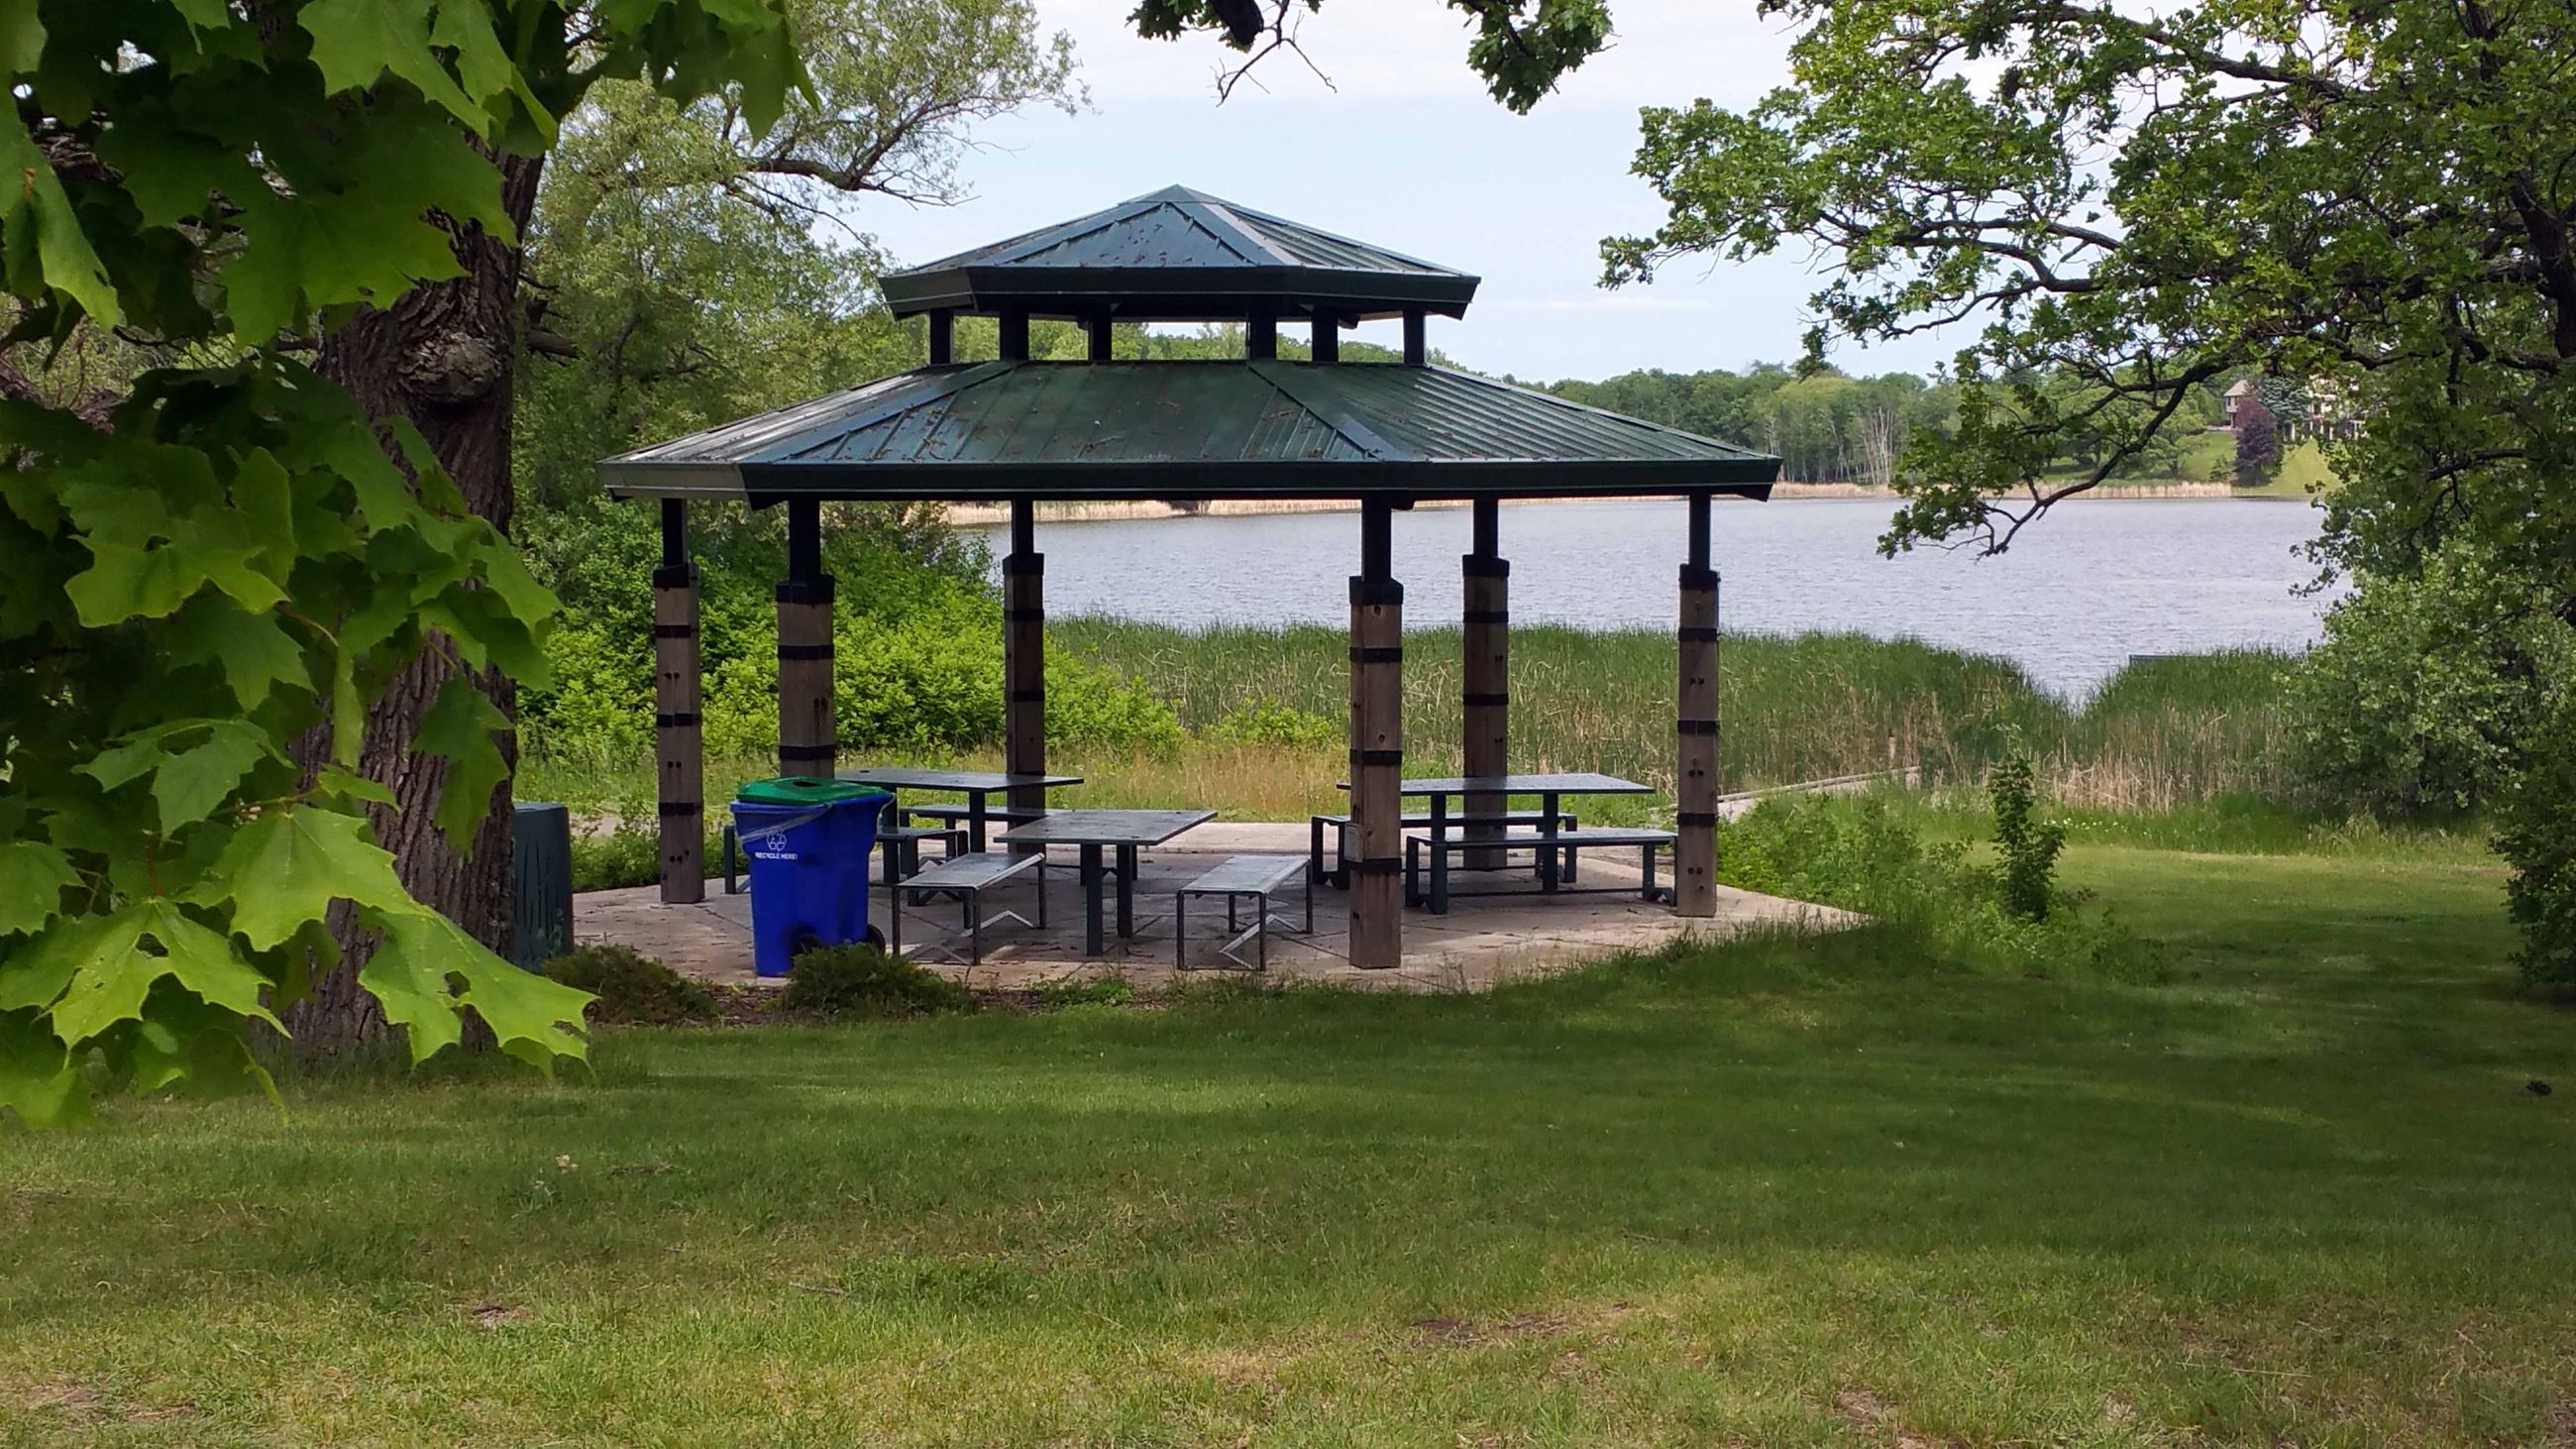 Sunfish Lake Park Shelter has several tables at it. Number of tables can vary. Great view of the wat